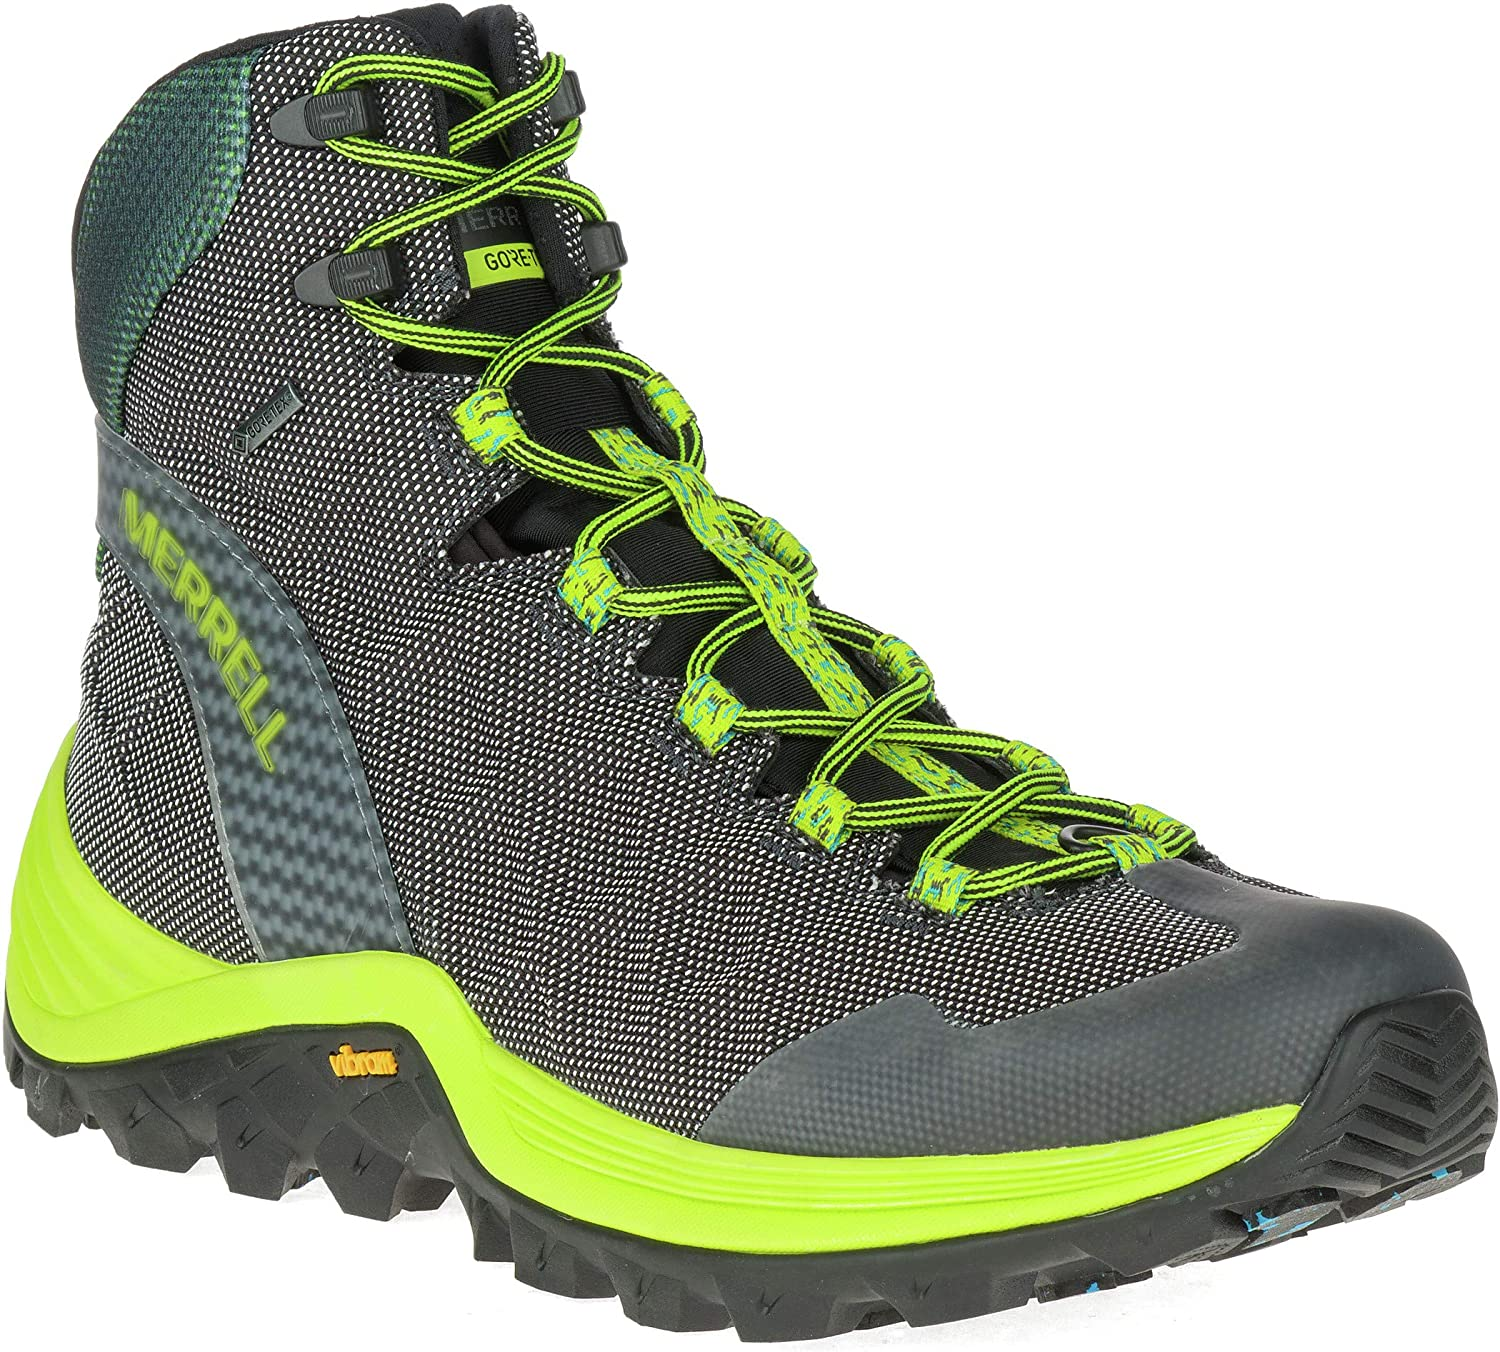 8f83d0c6ae1 Merrell Thermo Rogue 6